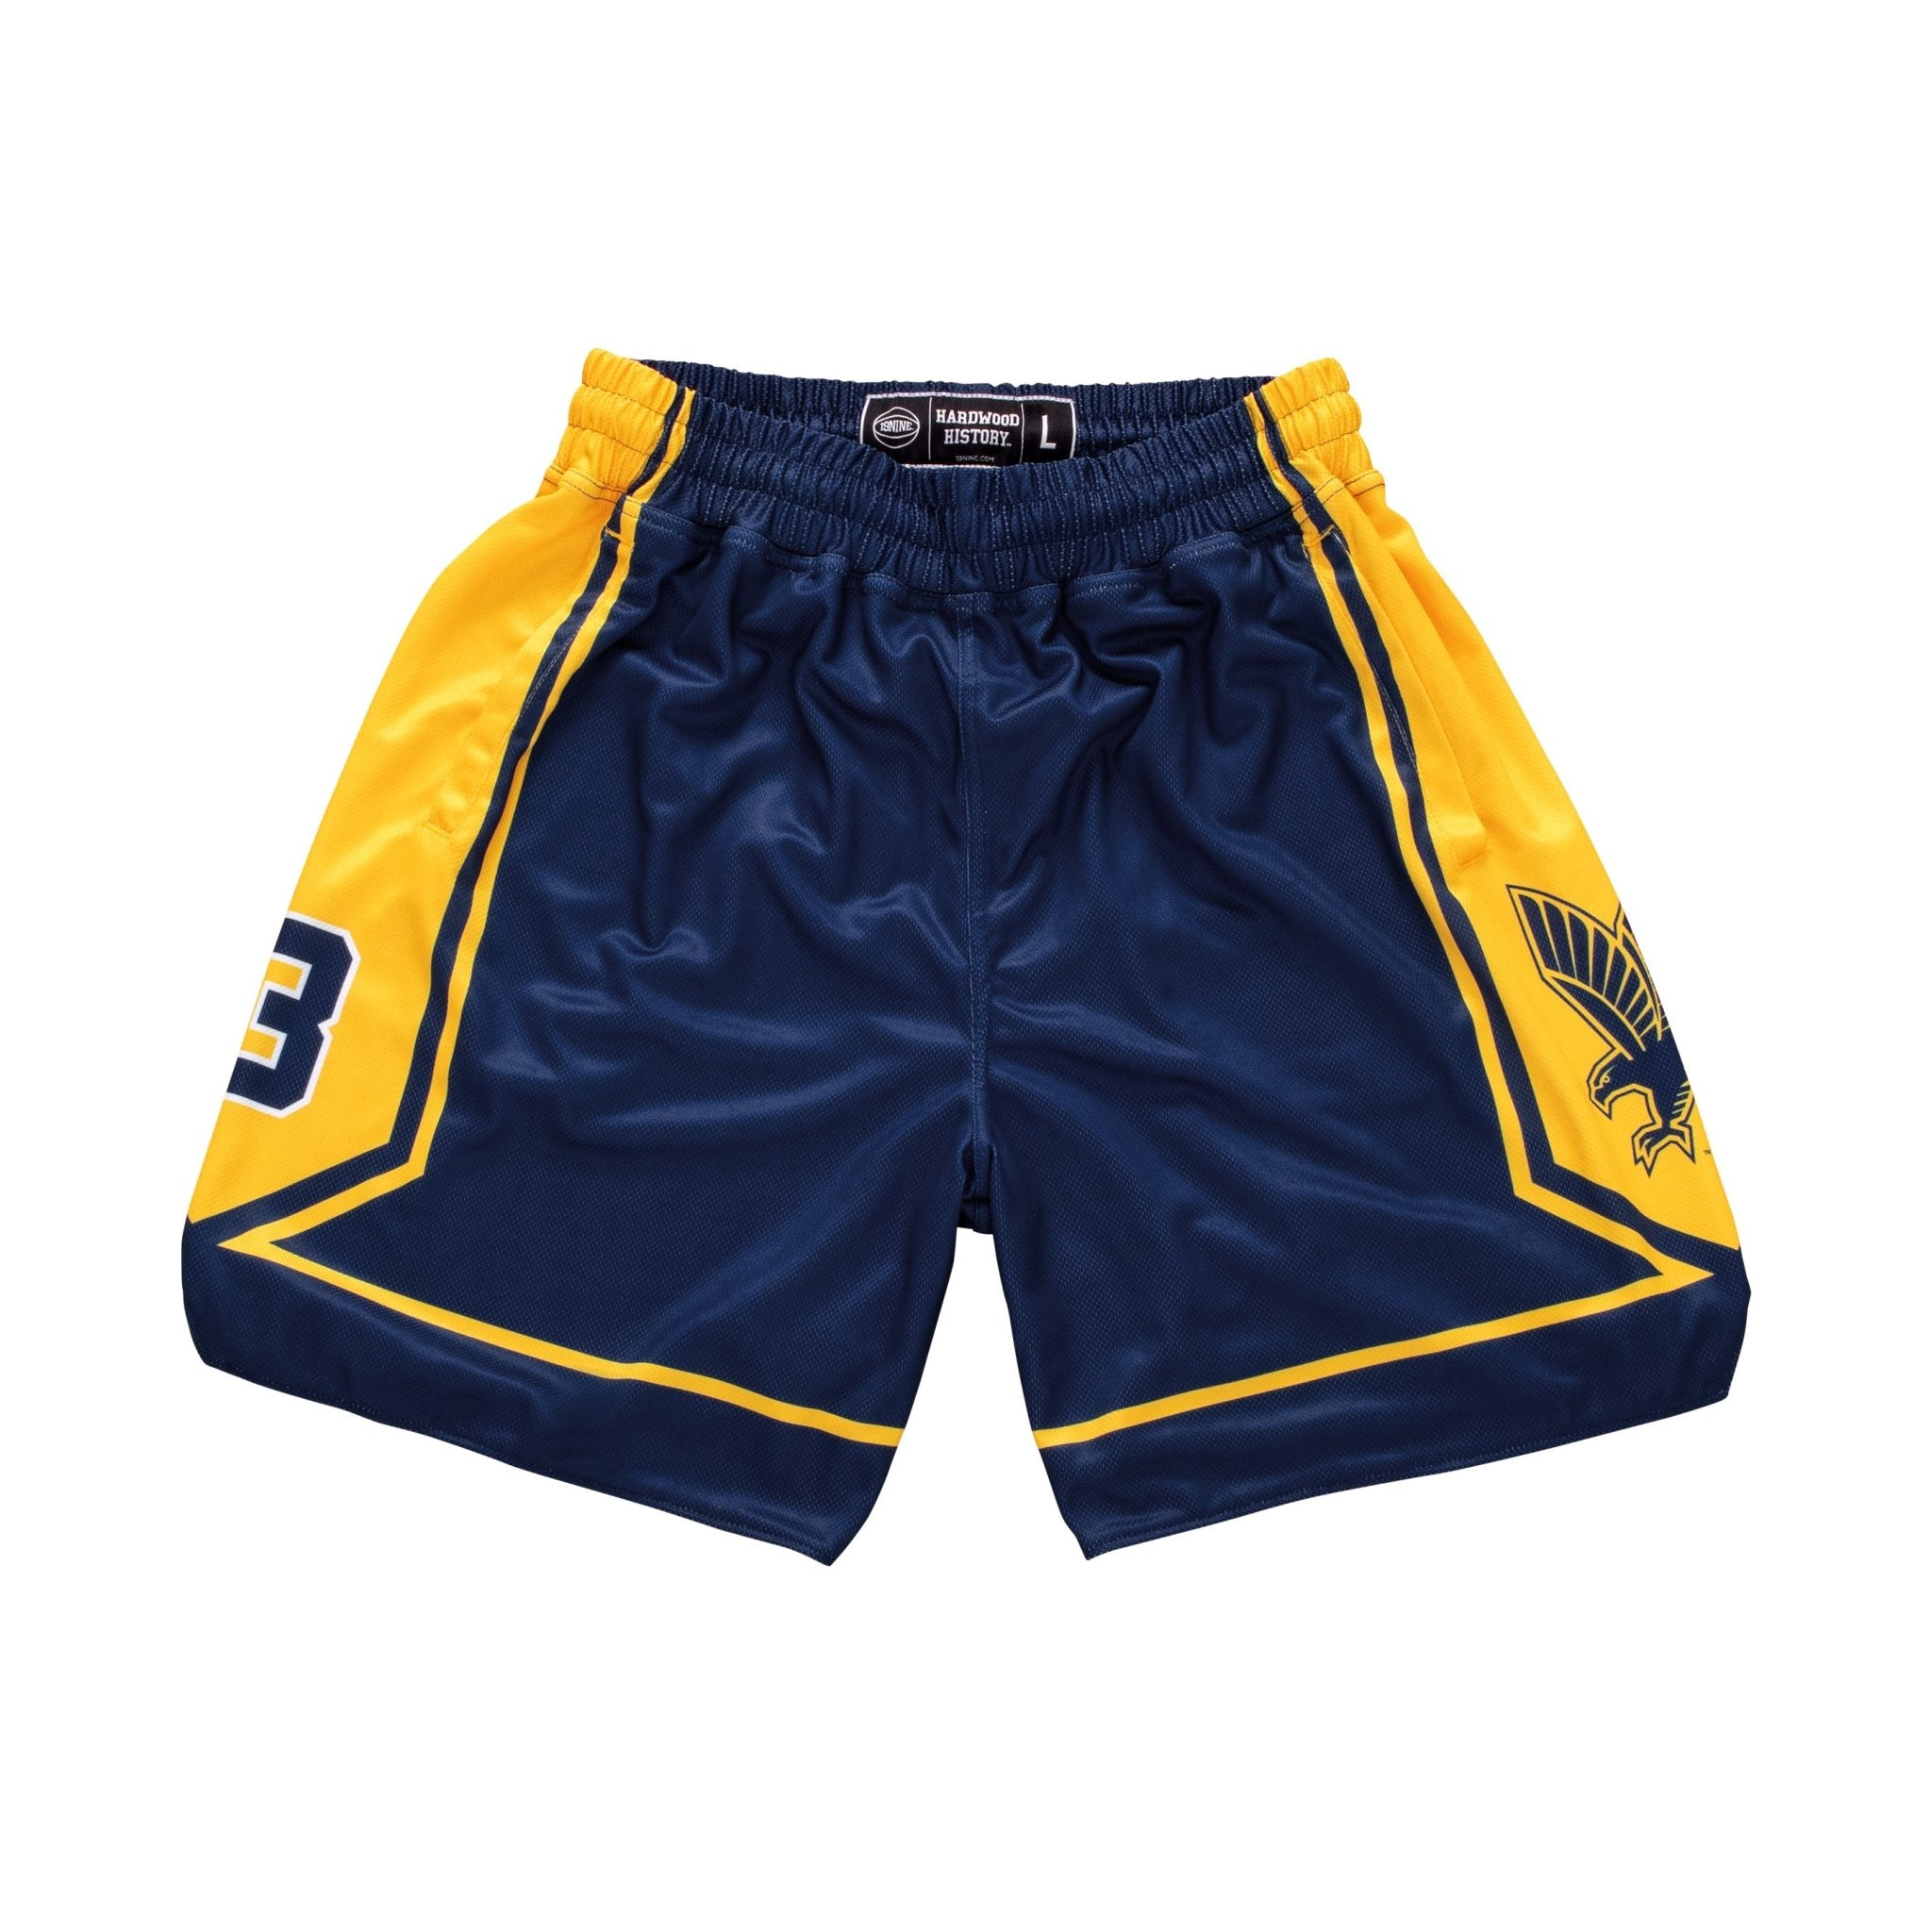 Marquette Golden Eagles 2002-2003 Retro Shorts - SLAM